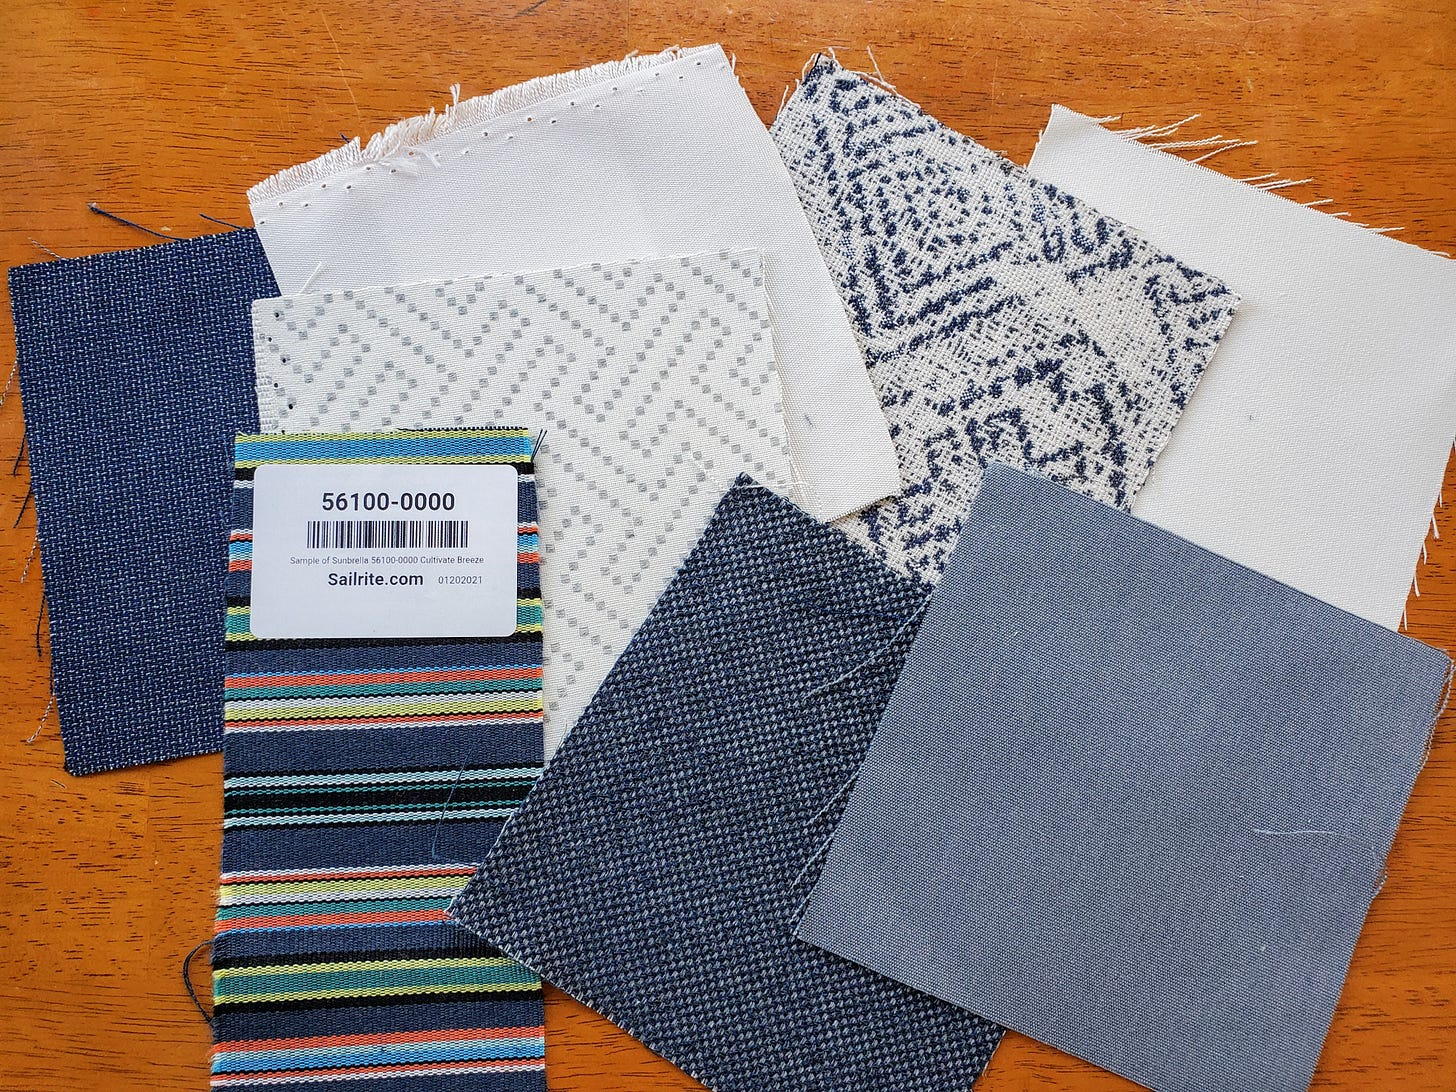 Image: square samples of Sunbrella fabric in blues and whites on a wood table top.